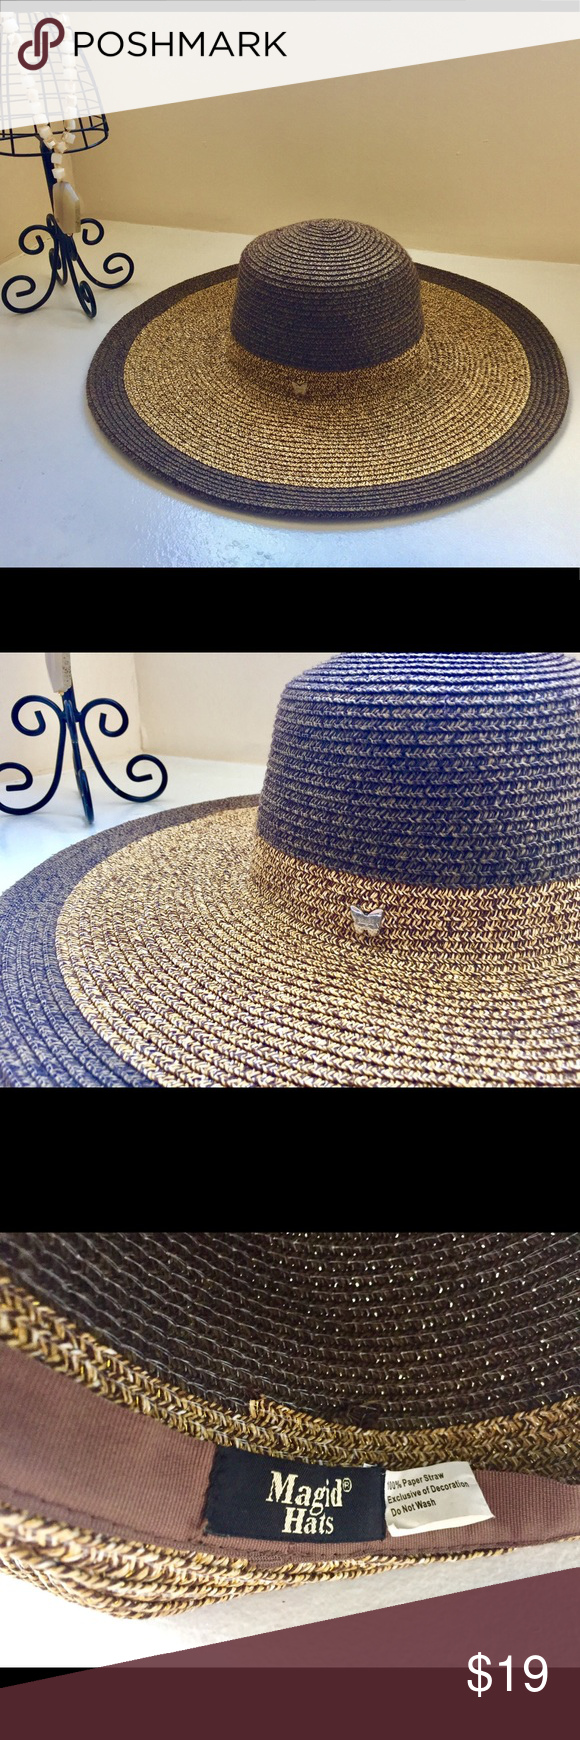 Magid Hats Summer Gold and Brown Hat Pre-owned 1d1f366b172